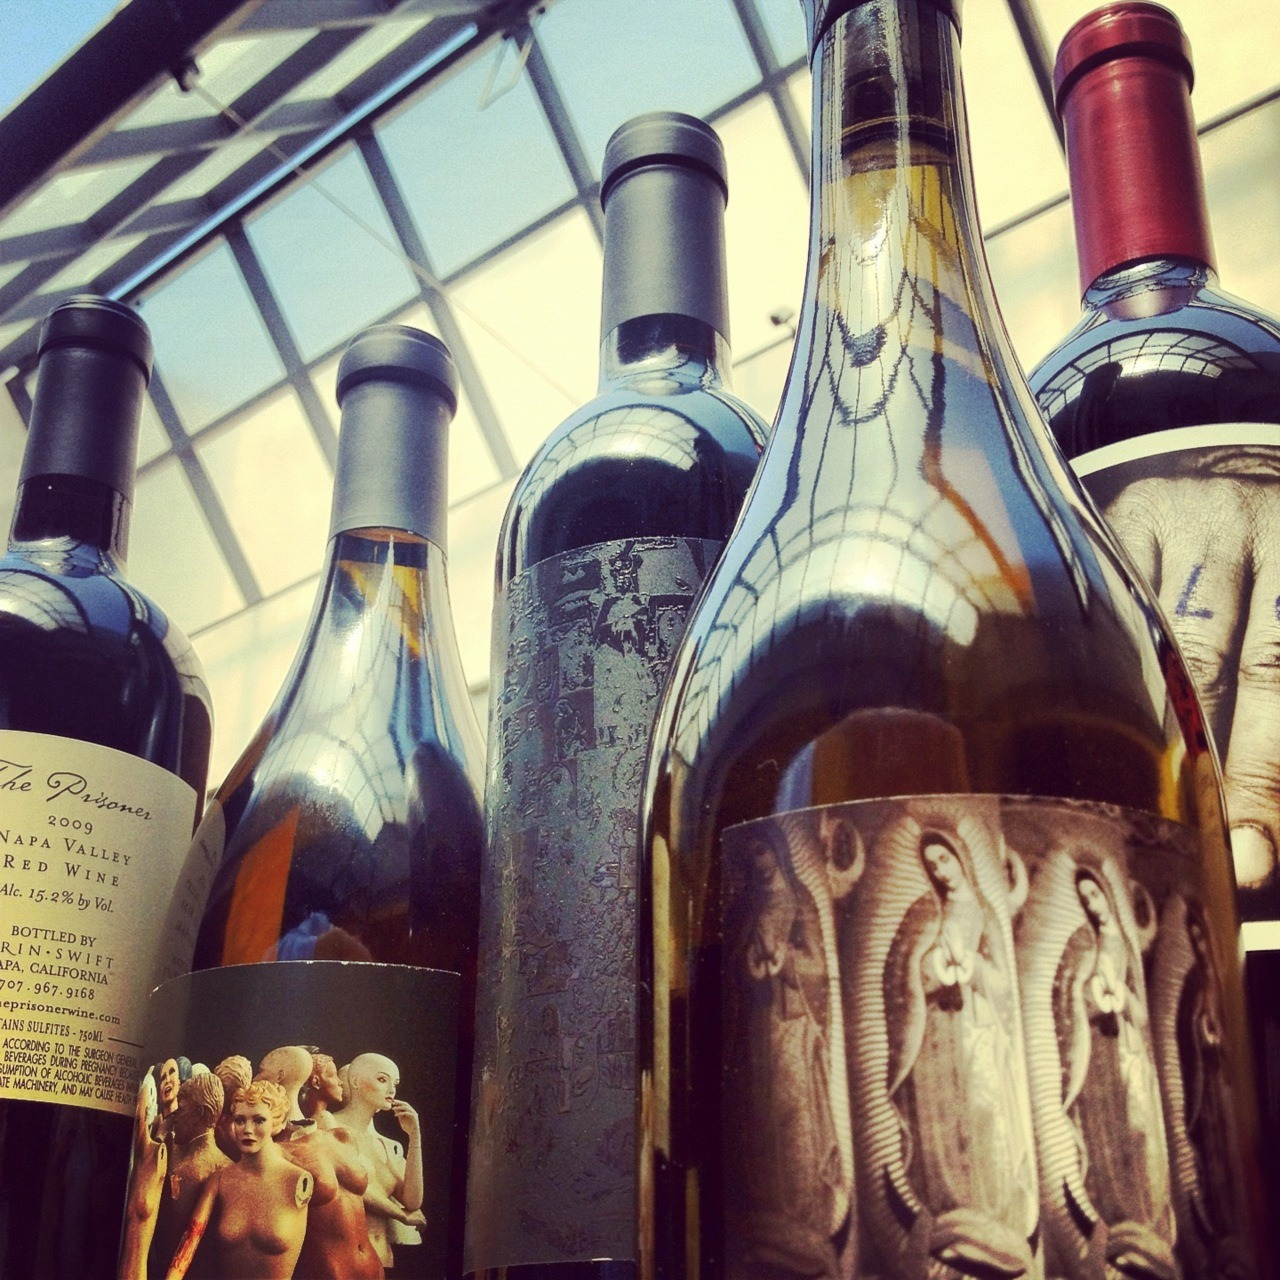 We are proud to exclusively carry Orin Swift wines on our Reserve Wine List.  These cult small batch wines by master winemaker Dave Phinney have been described as very flavor forward with striking and beautiful blends that cannot be missed.  Besides the artistry of the wine itself, the bottles also boast some pretty incredible and provoking artwork.   A perfect pairing for our eclectic small plate menu selection.  www.orinswift.com Cheers